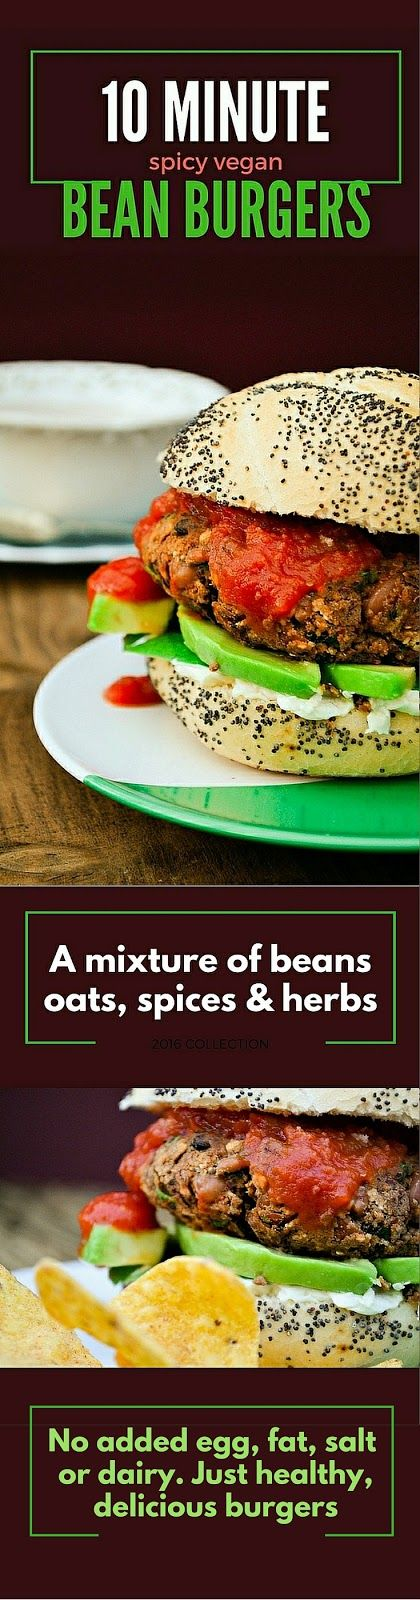 Quick and delicious bean burgers made in 10 minutes from beans, oats, spices and herbs. These are dairy free and vegan with no added salt, sugar, fat or additives that supermarket burgers contain.